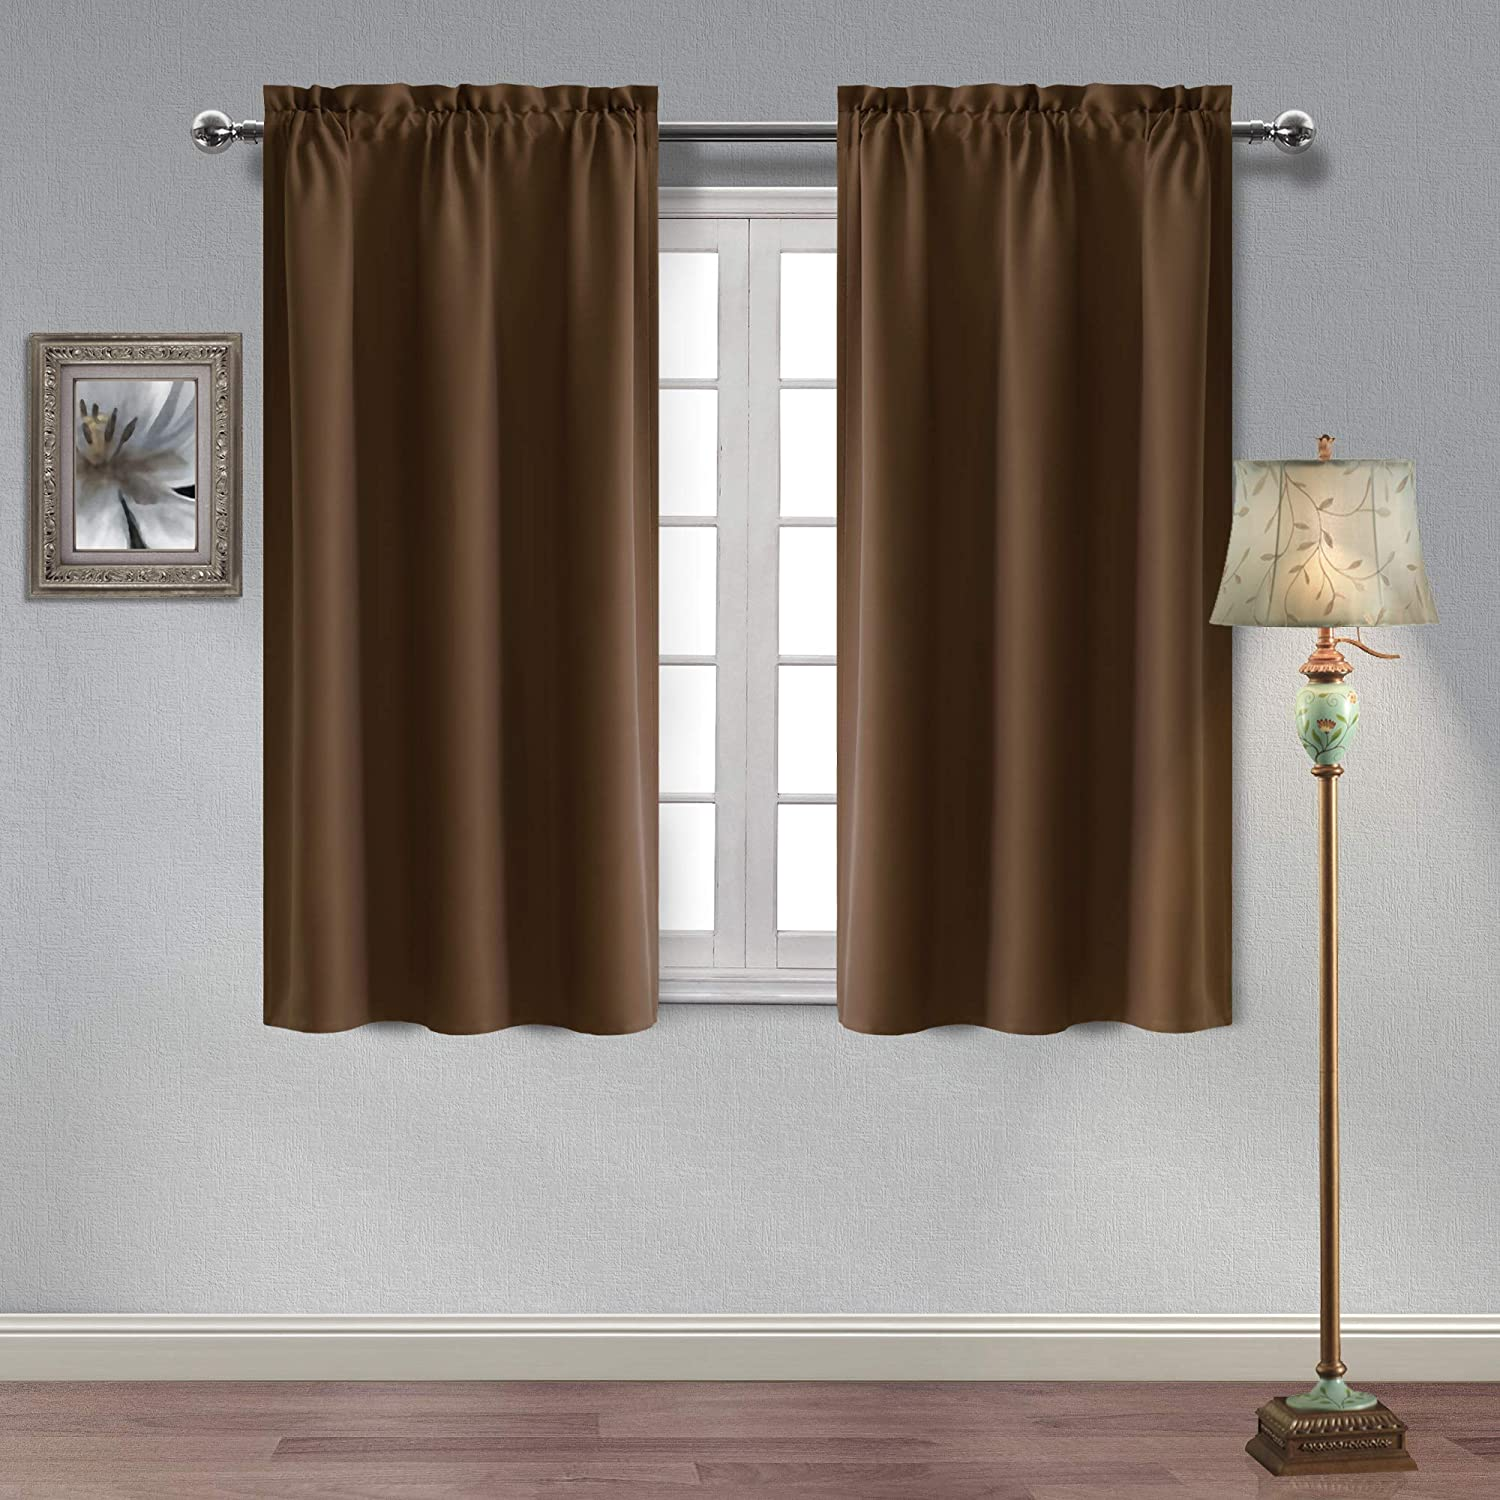 Hiasan Thermal Insulated Blackout Curtains for Bedroom Rod Pocket Sun Blocking and Energy Saving Room Darkening Window Curtains, 38 x 45 Inches Length, Brown, 2 Drape Panels